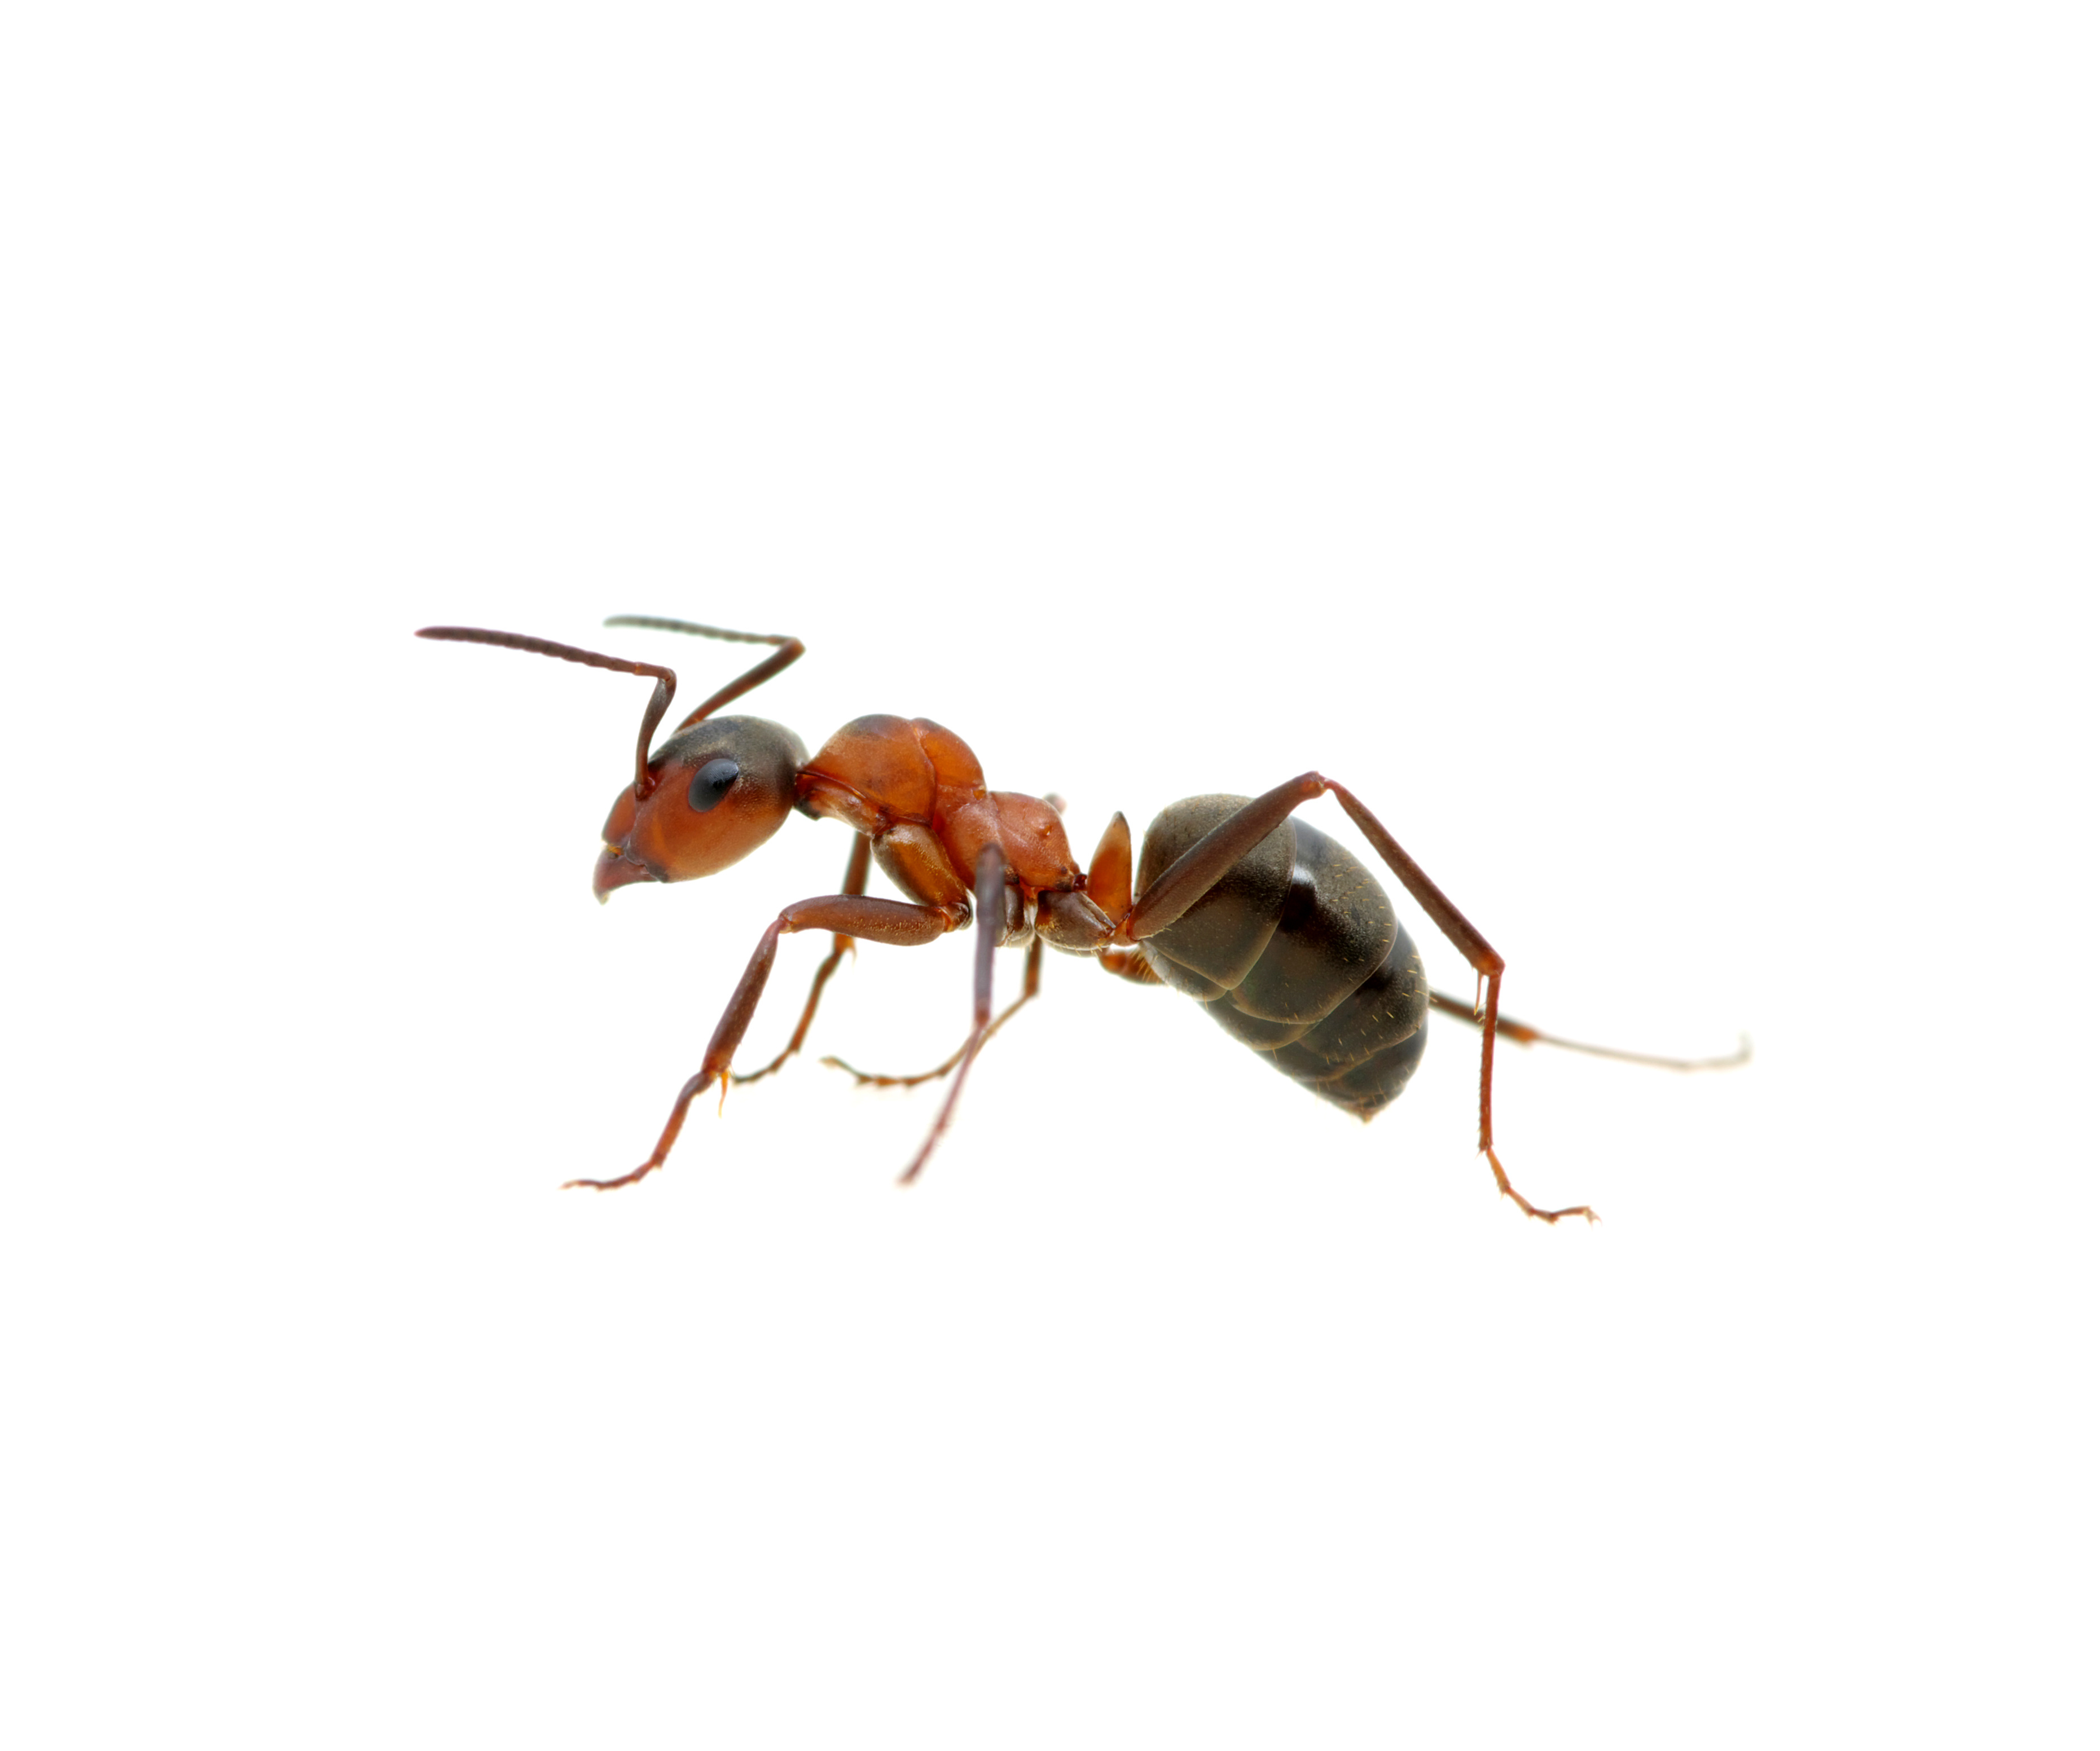 Ant Pest Control Services, Infestation Removal